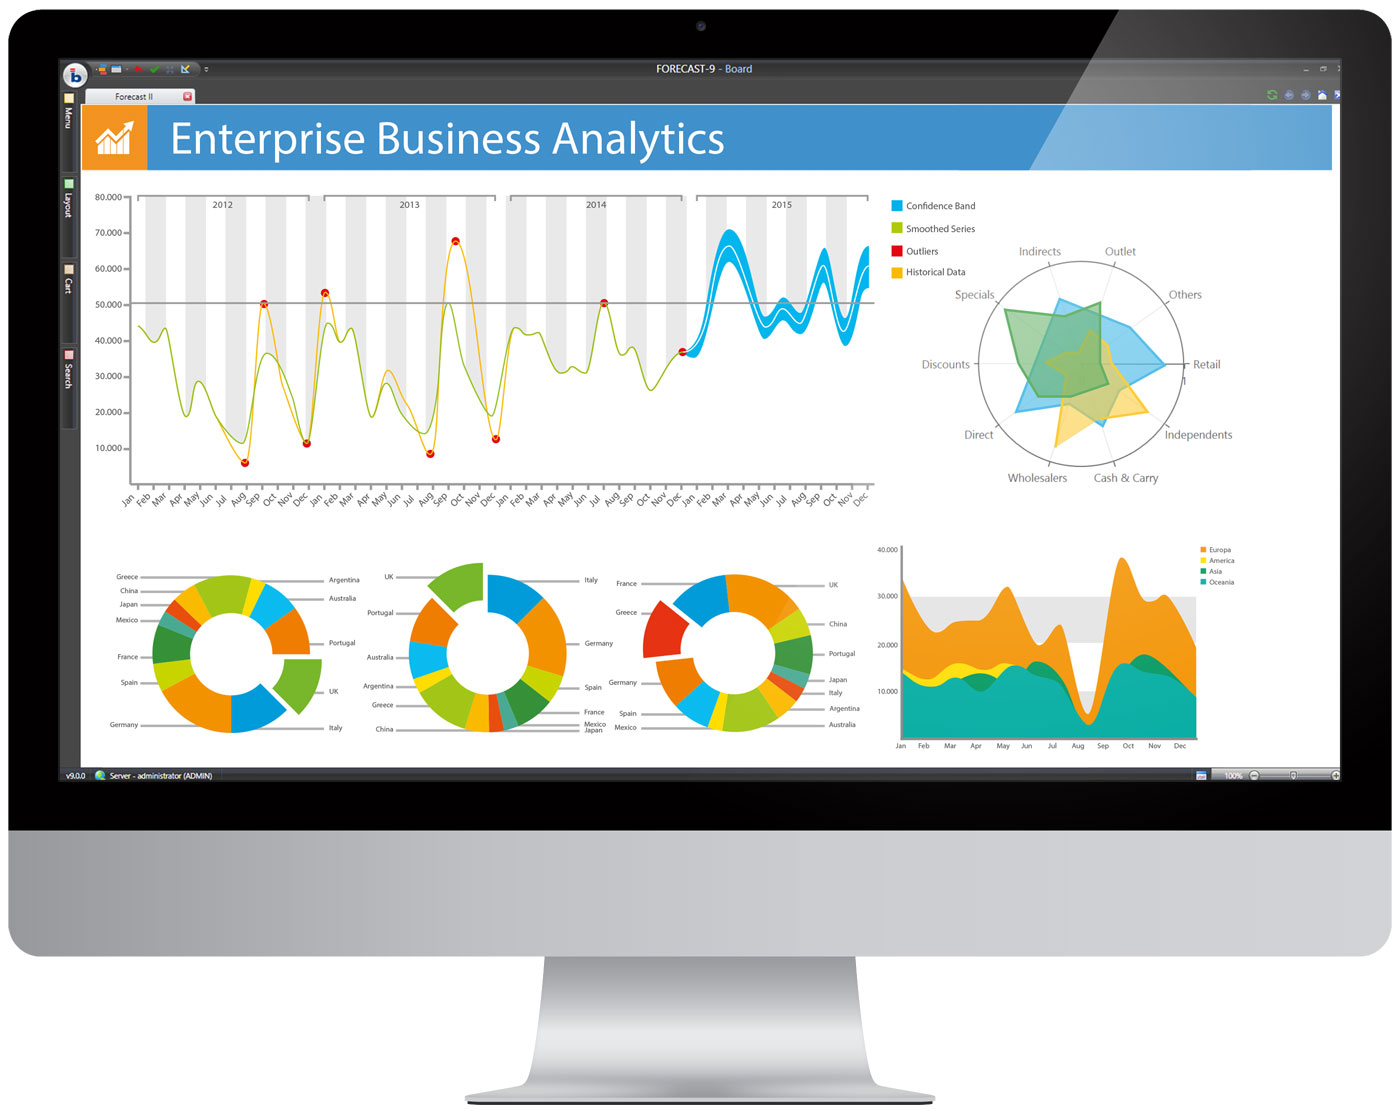 BOARD Enterprise Business Analytics